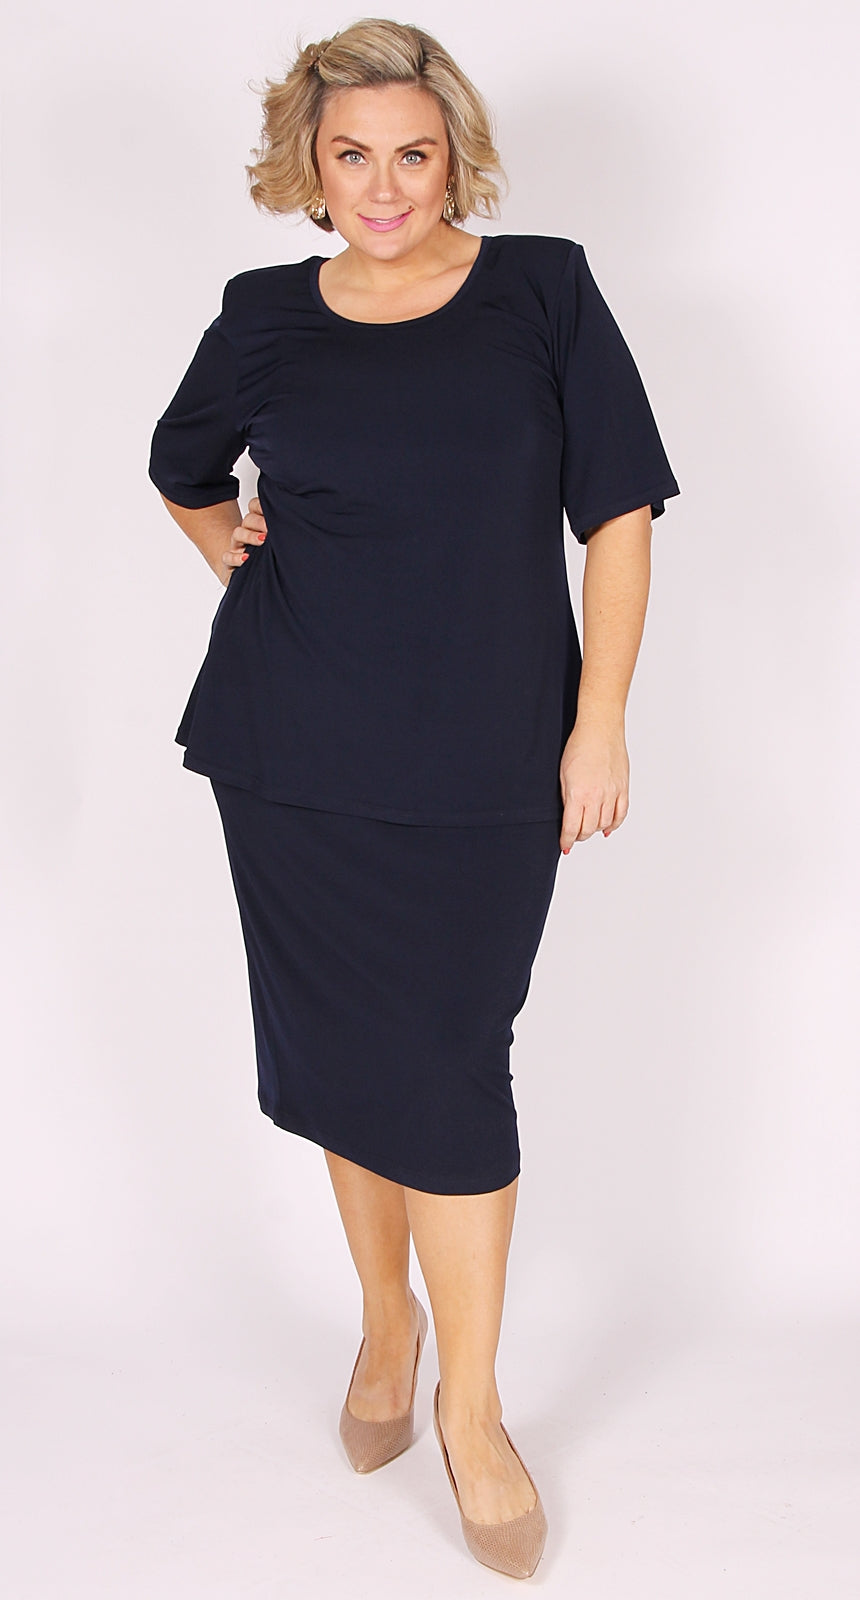 Lagos Mid-Length Knit Straight Skirt Navy